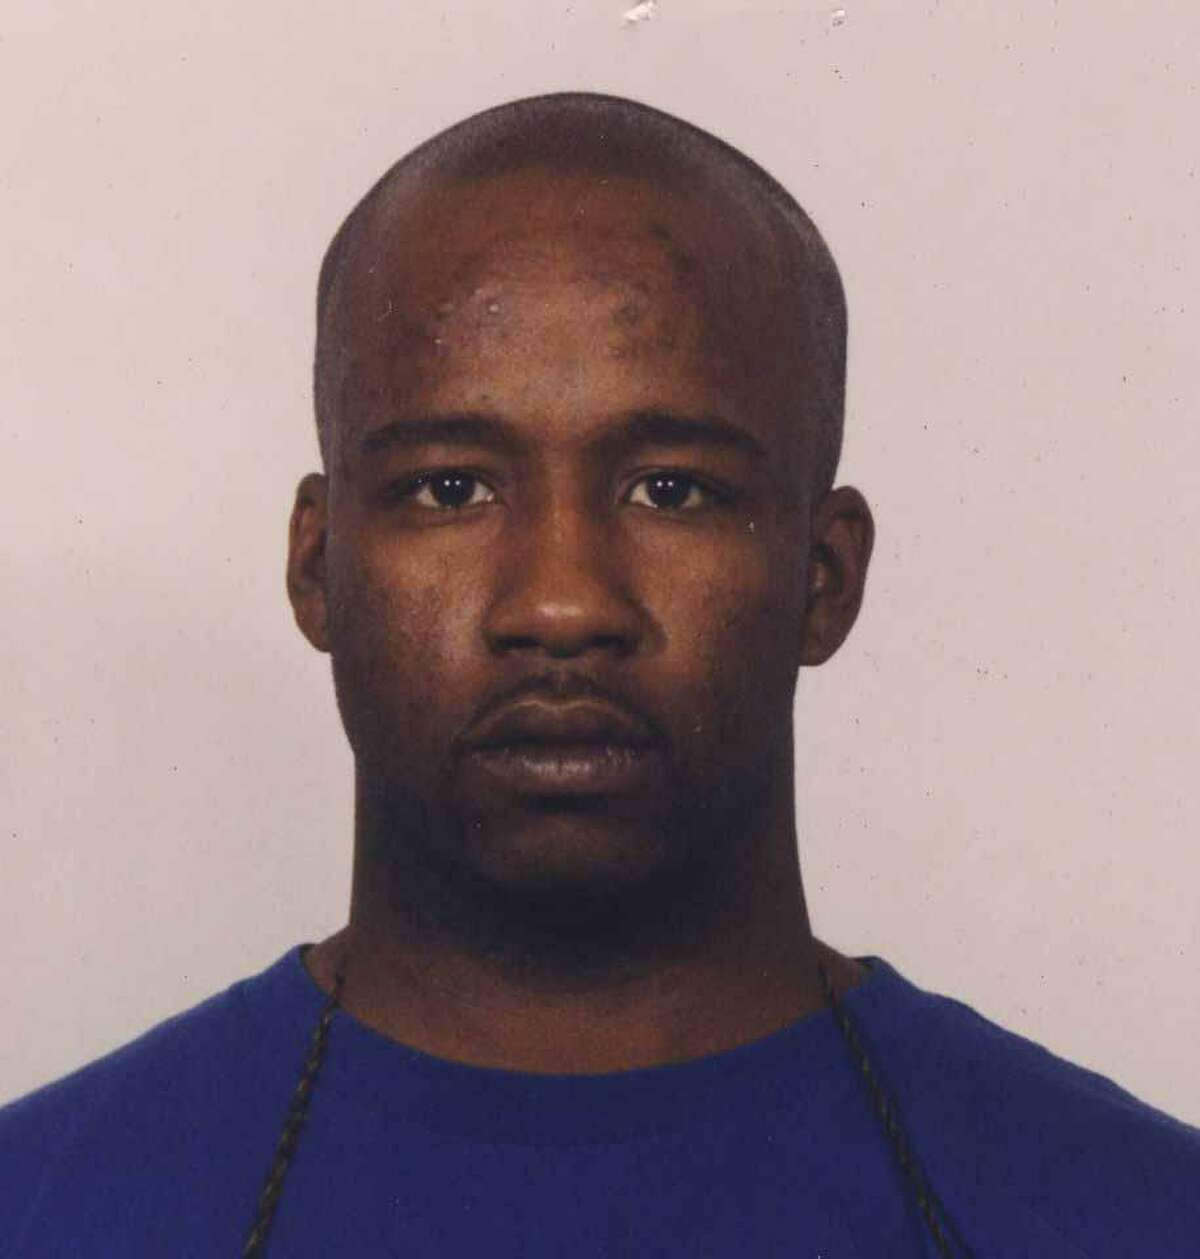 Norwalk police cold case detectives are working to solve the 2000 homicide of a Bridgeport man, John Norwood.